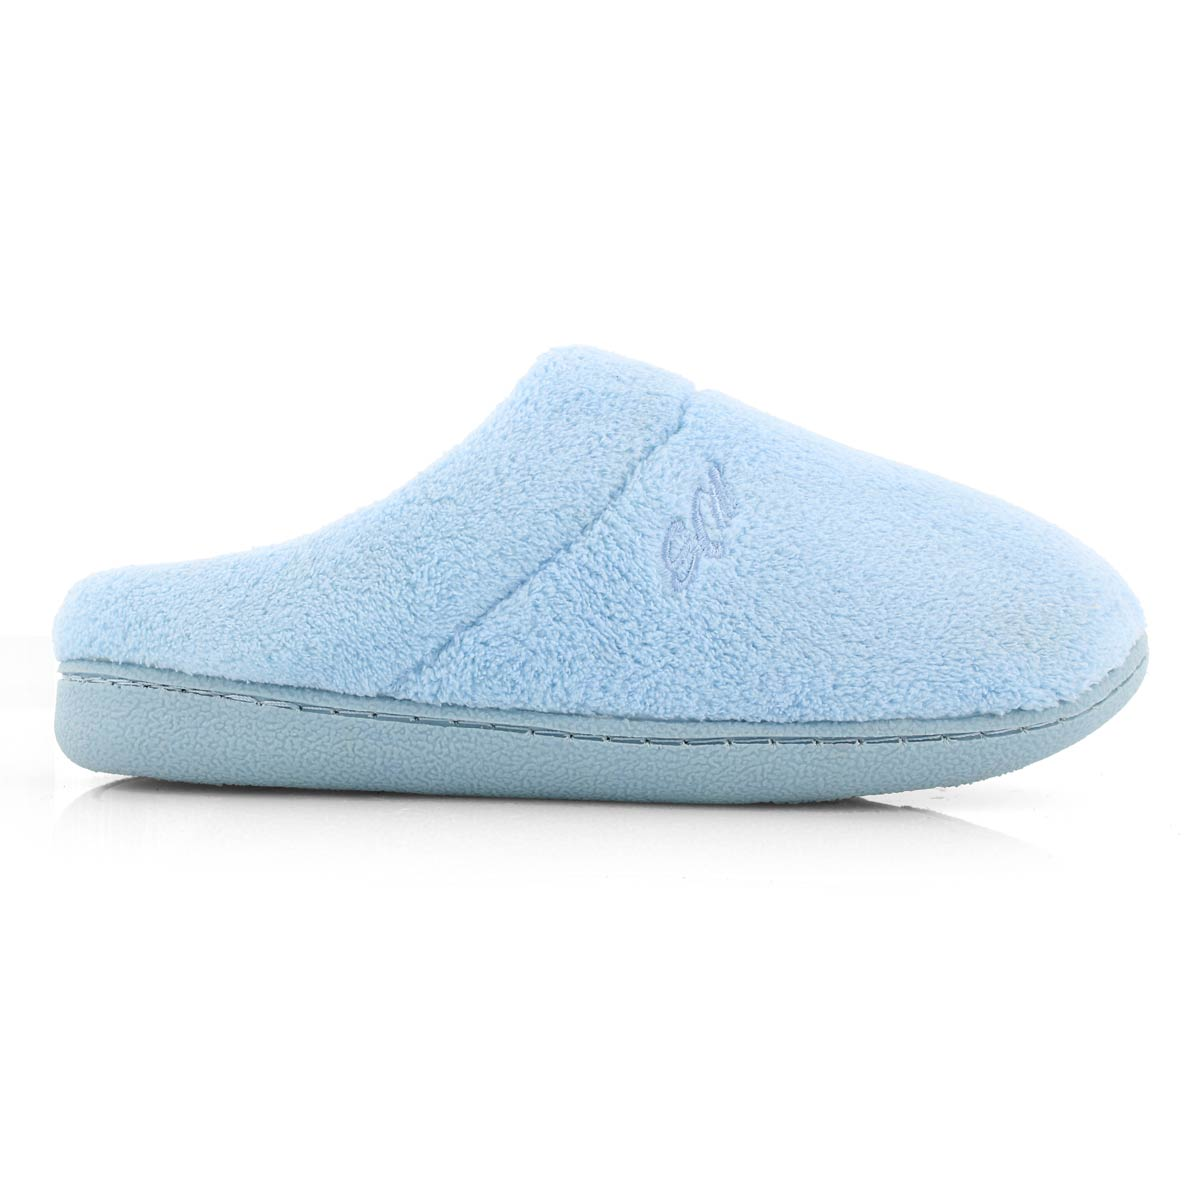 Lds Snuggle blue open back mem foam slpr